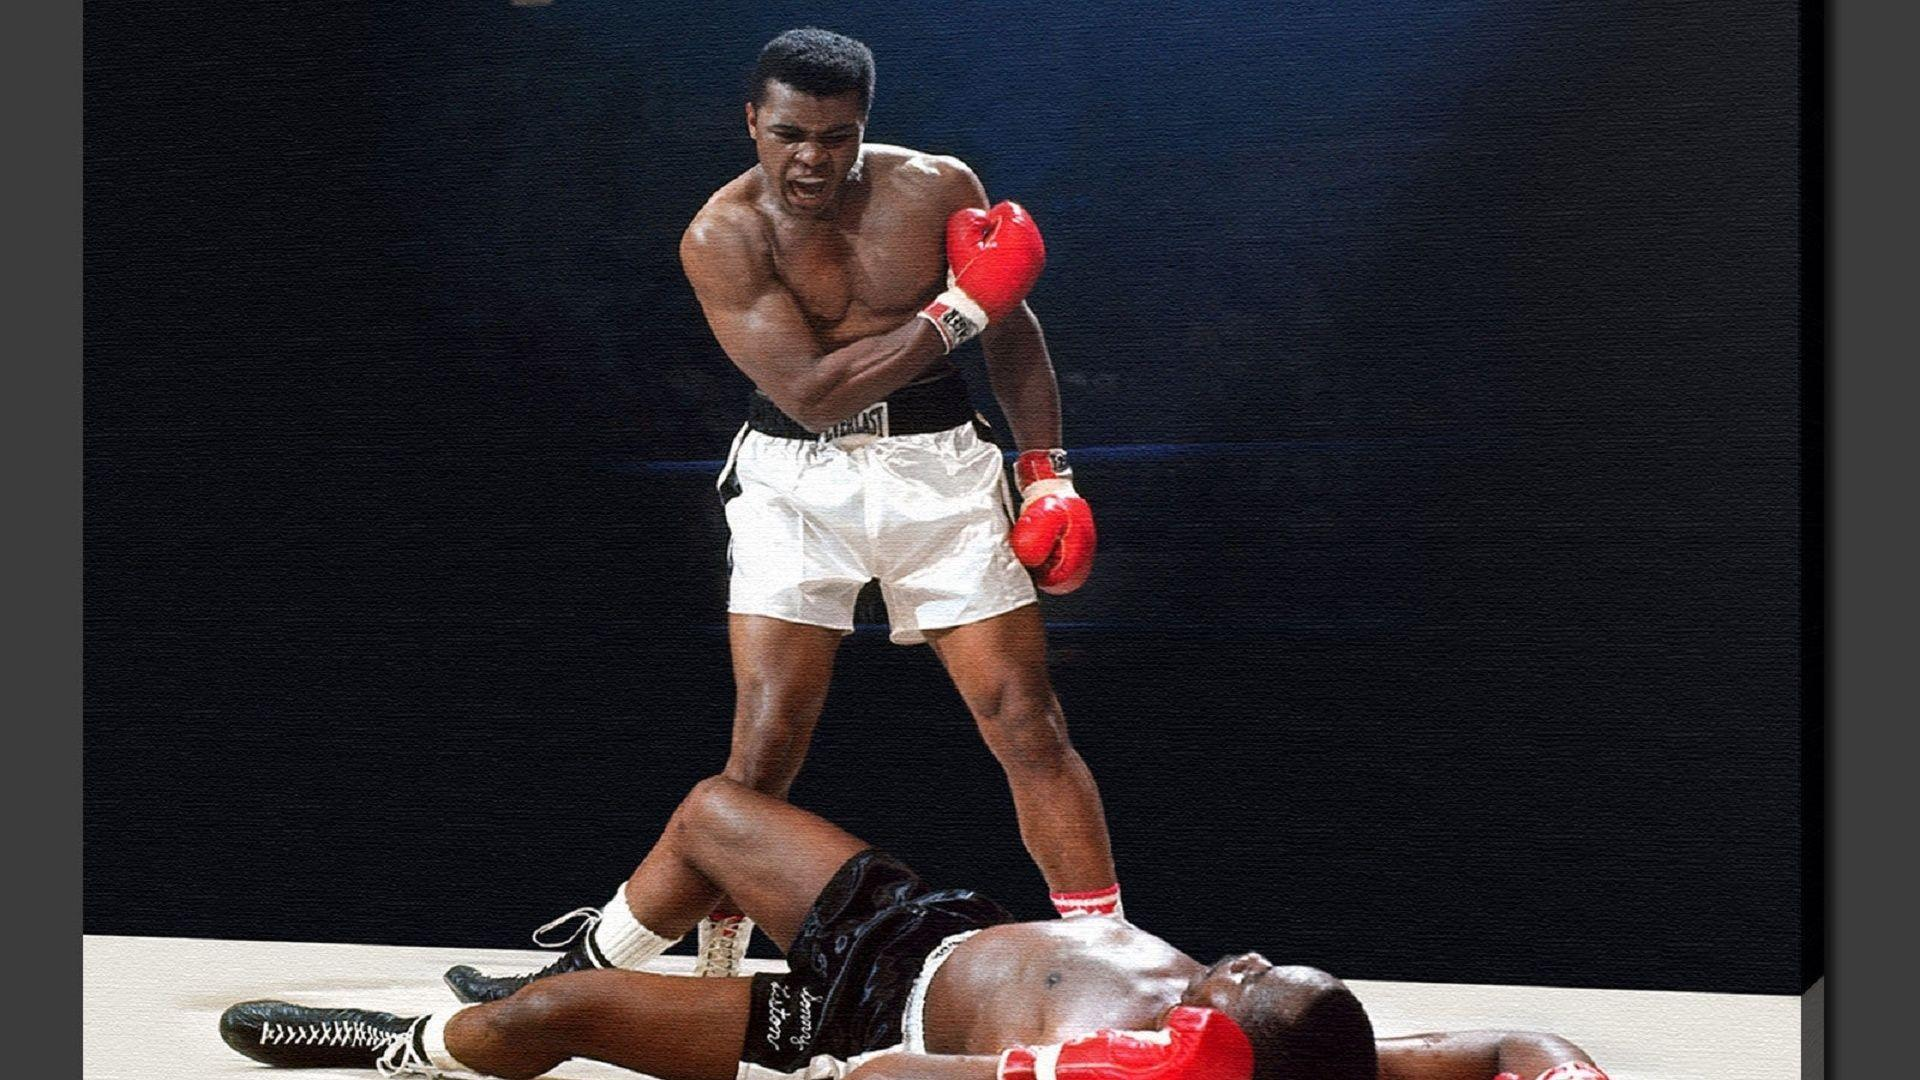 a review of the boxing career of muhammad ali cassius clay Muhammad ali - the greatest career muhammad ali - the greatest career  muhammad ali (cassius clay)  this day in boxing february 6, 1967 - duration: 11:12.